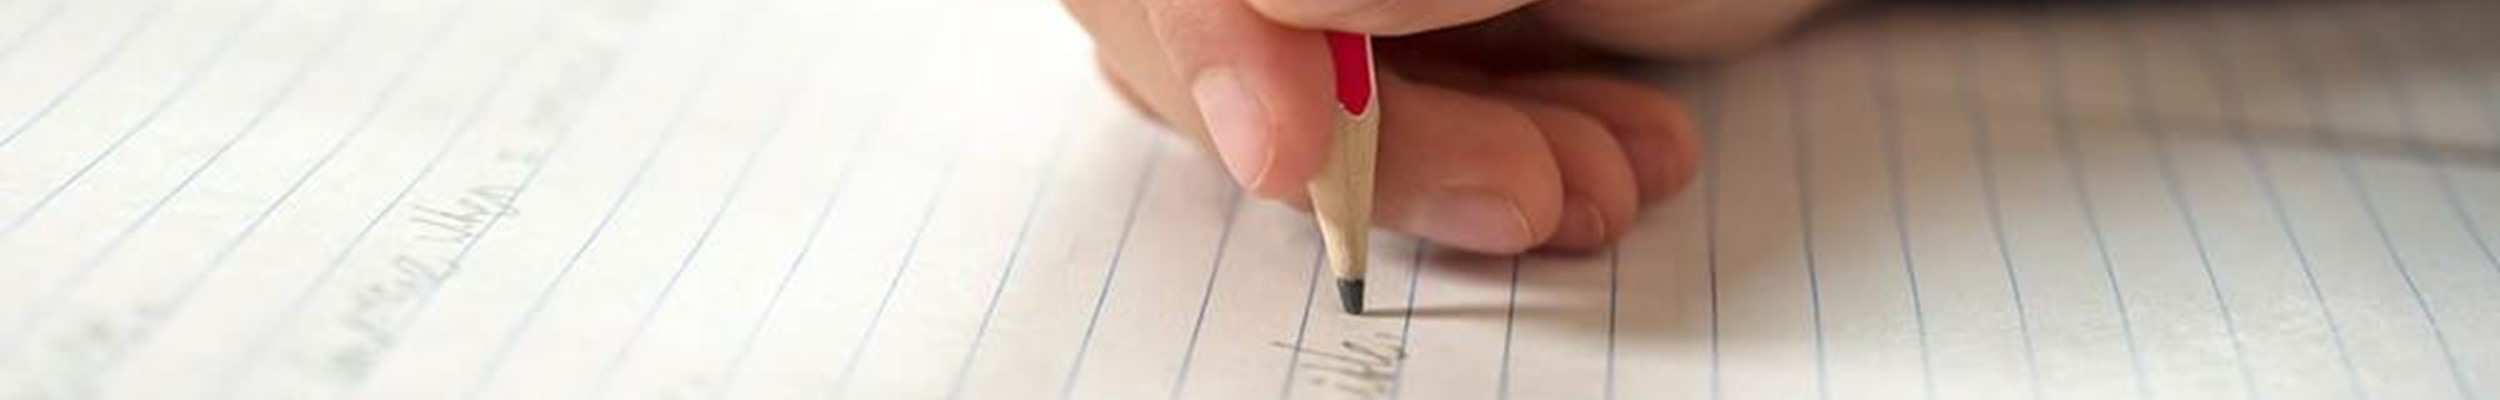 Writing on lined paper with a pencil